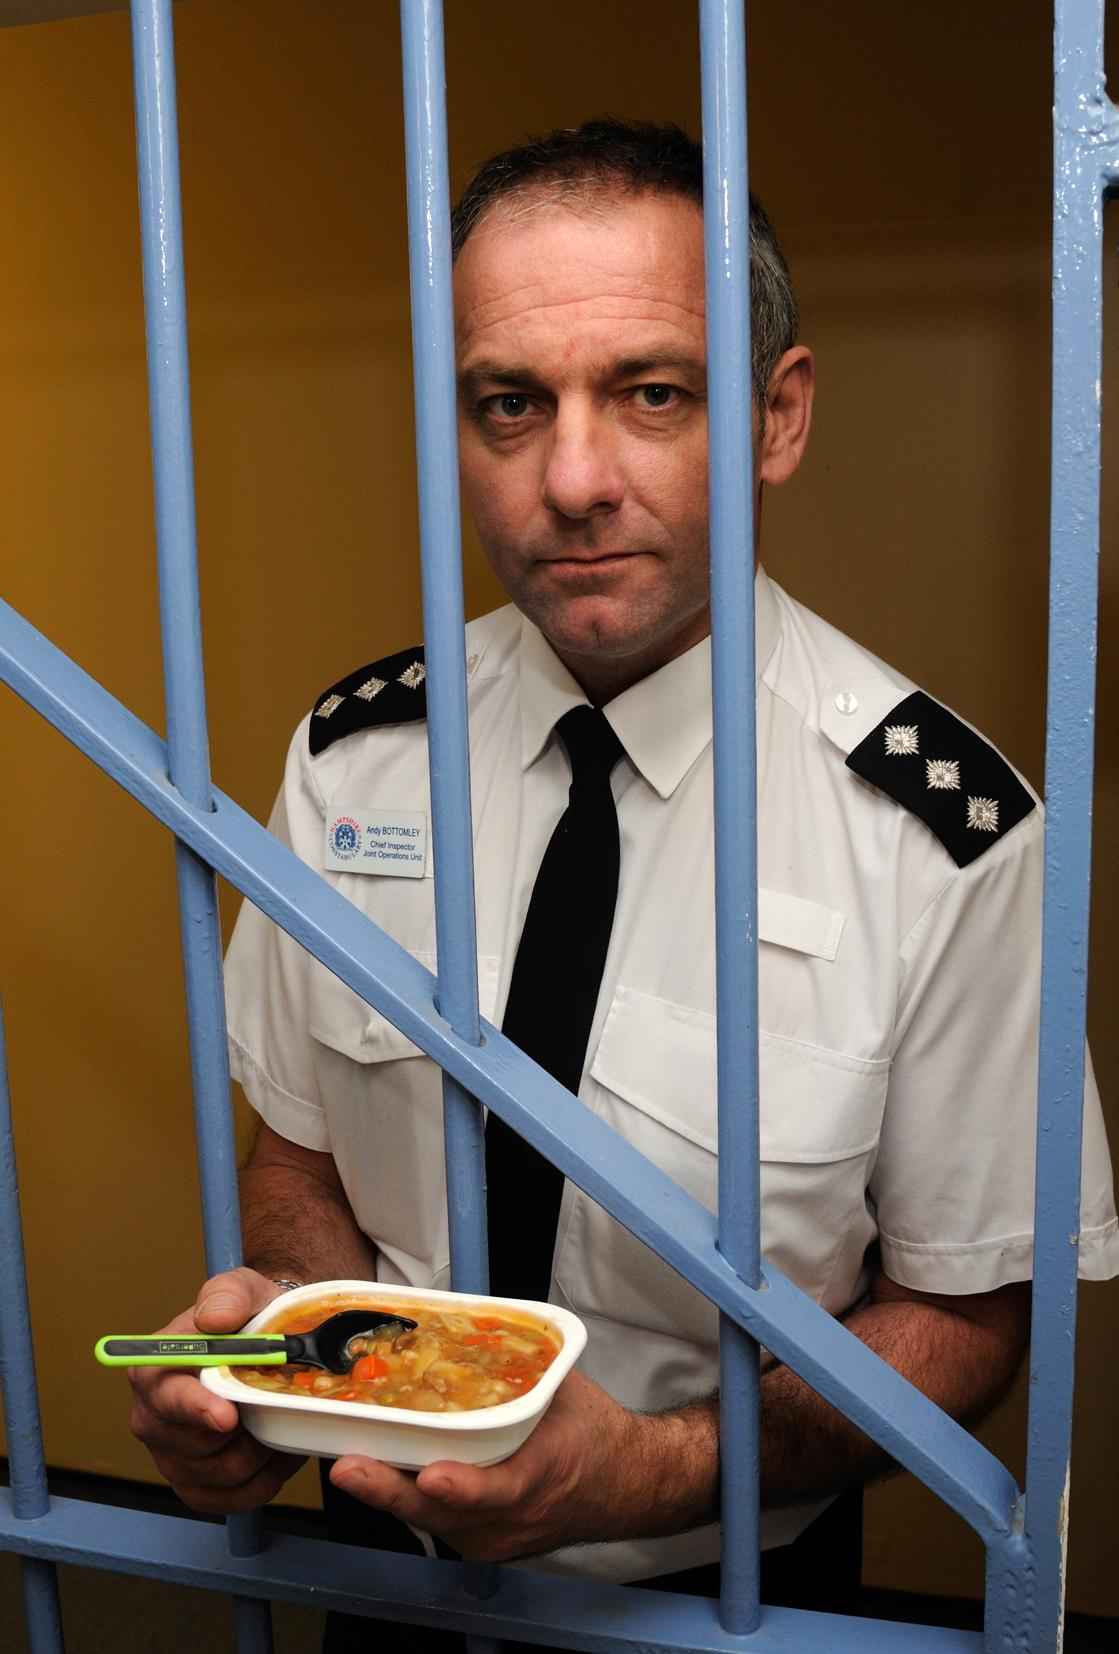 Chief Insp Andy Bottomley and the type of meal people in cells over Christmas can expect